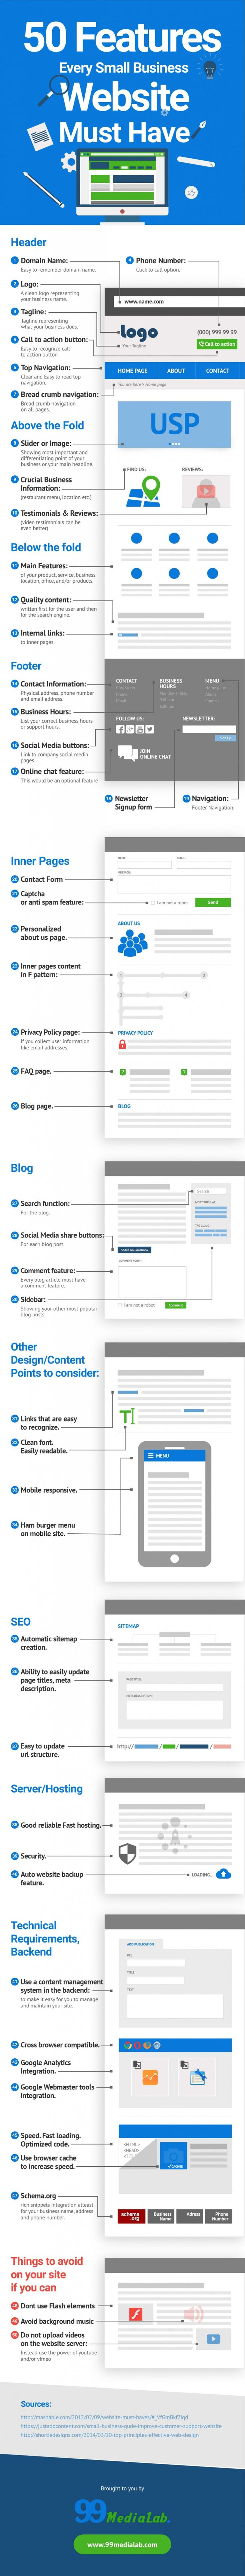 Small Business Website Design – 50 Must Have Features